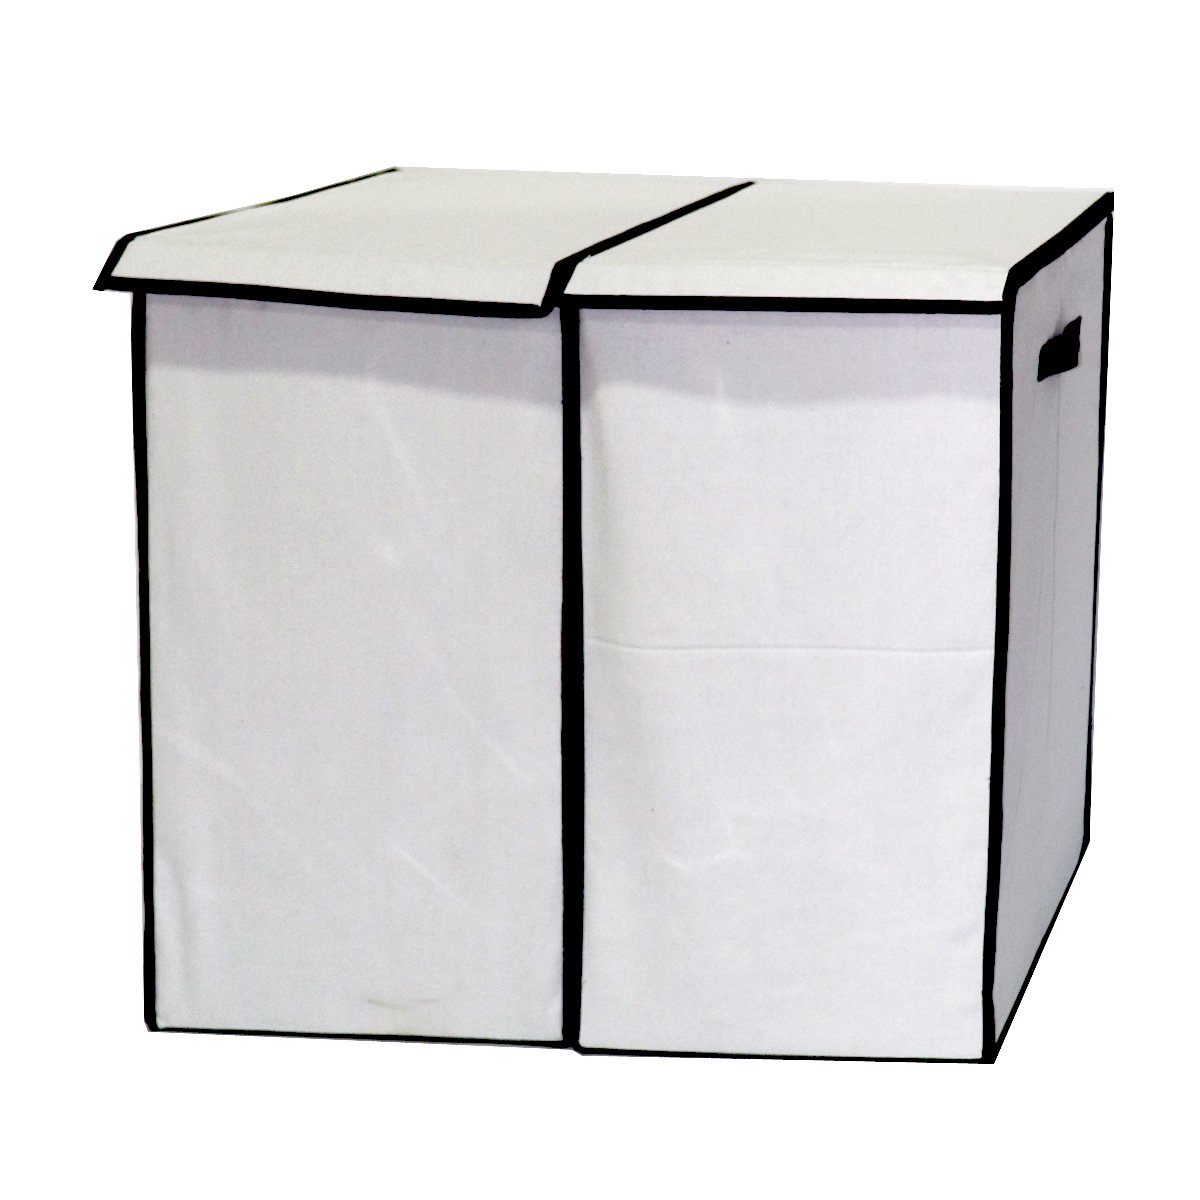 Laundry Hampers Collapsible Clothes Baskets with Lid-White-2 Pack